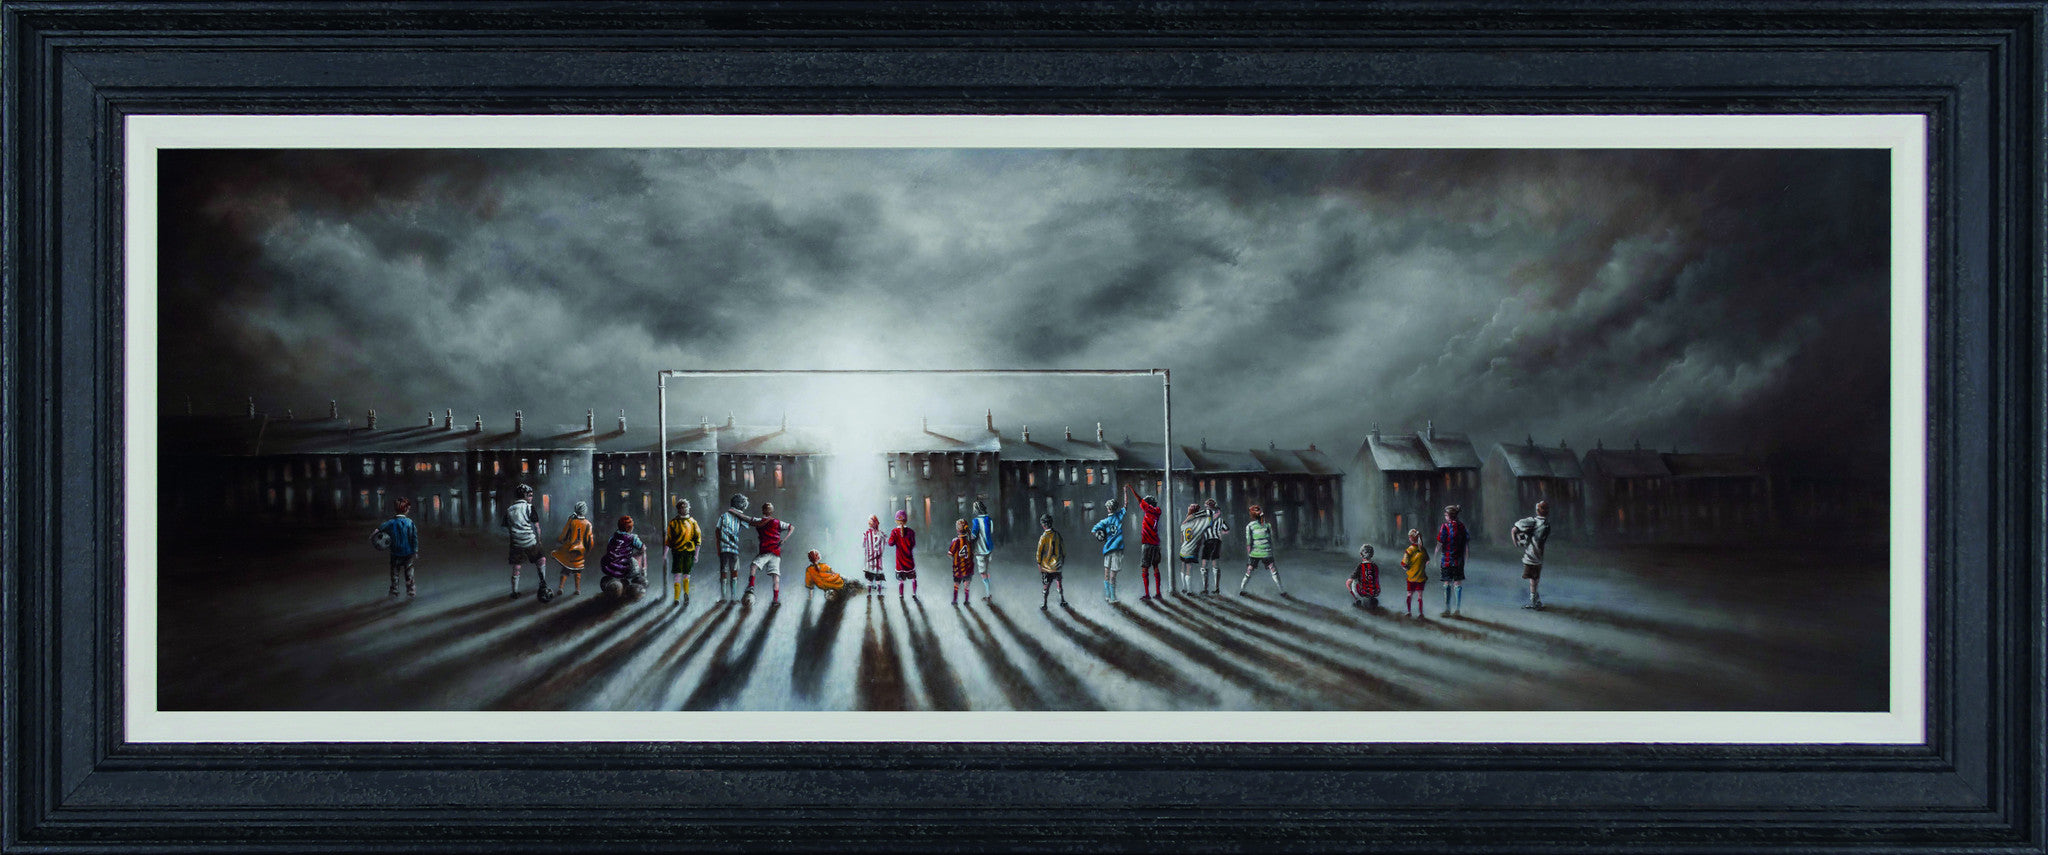 The Passion - 2013 - Bob Barker - Antidote Art